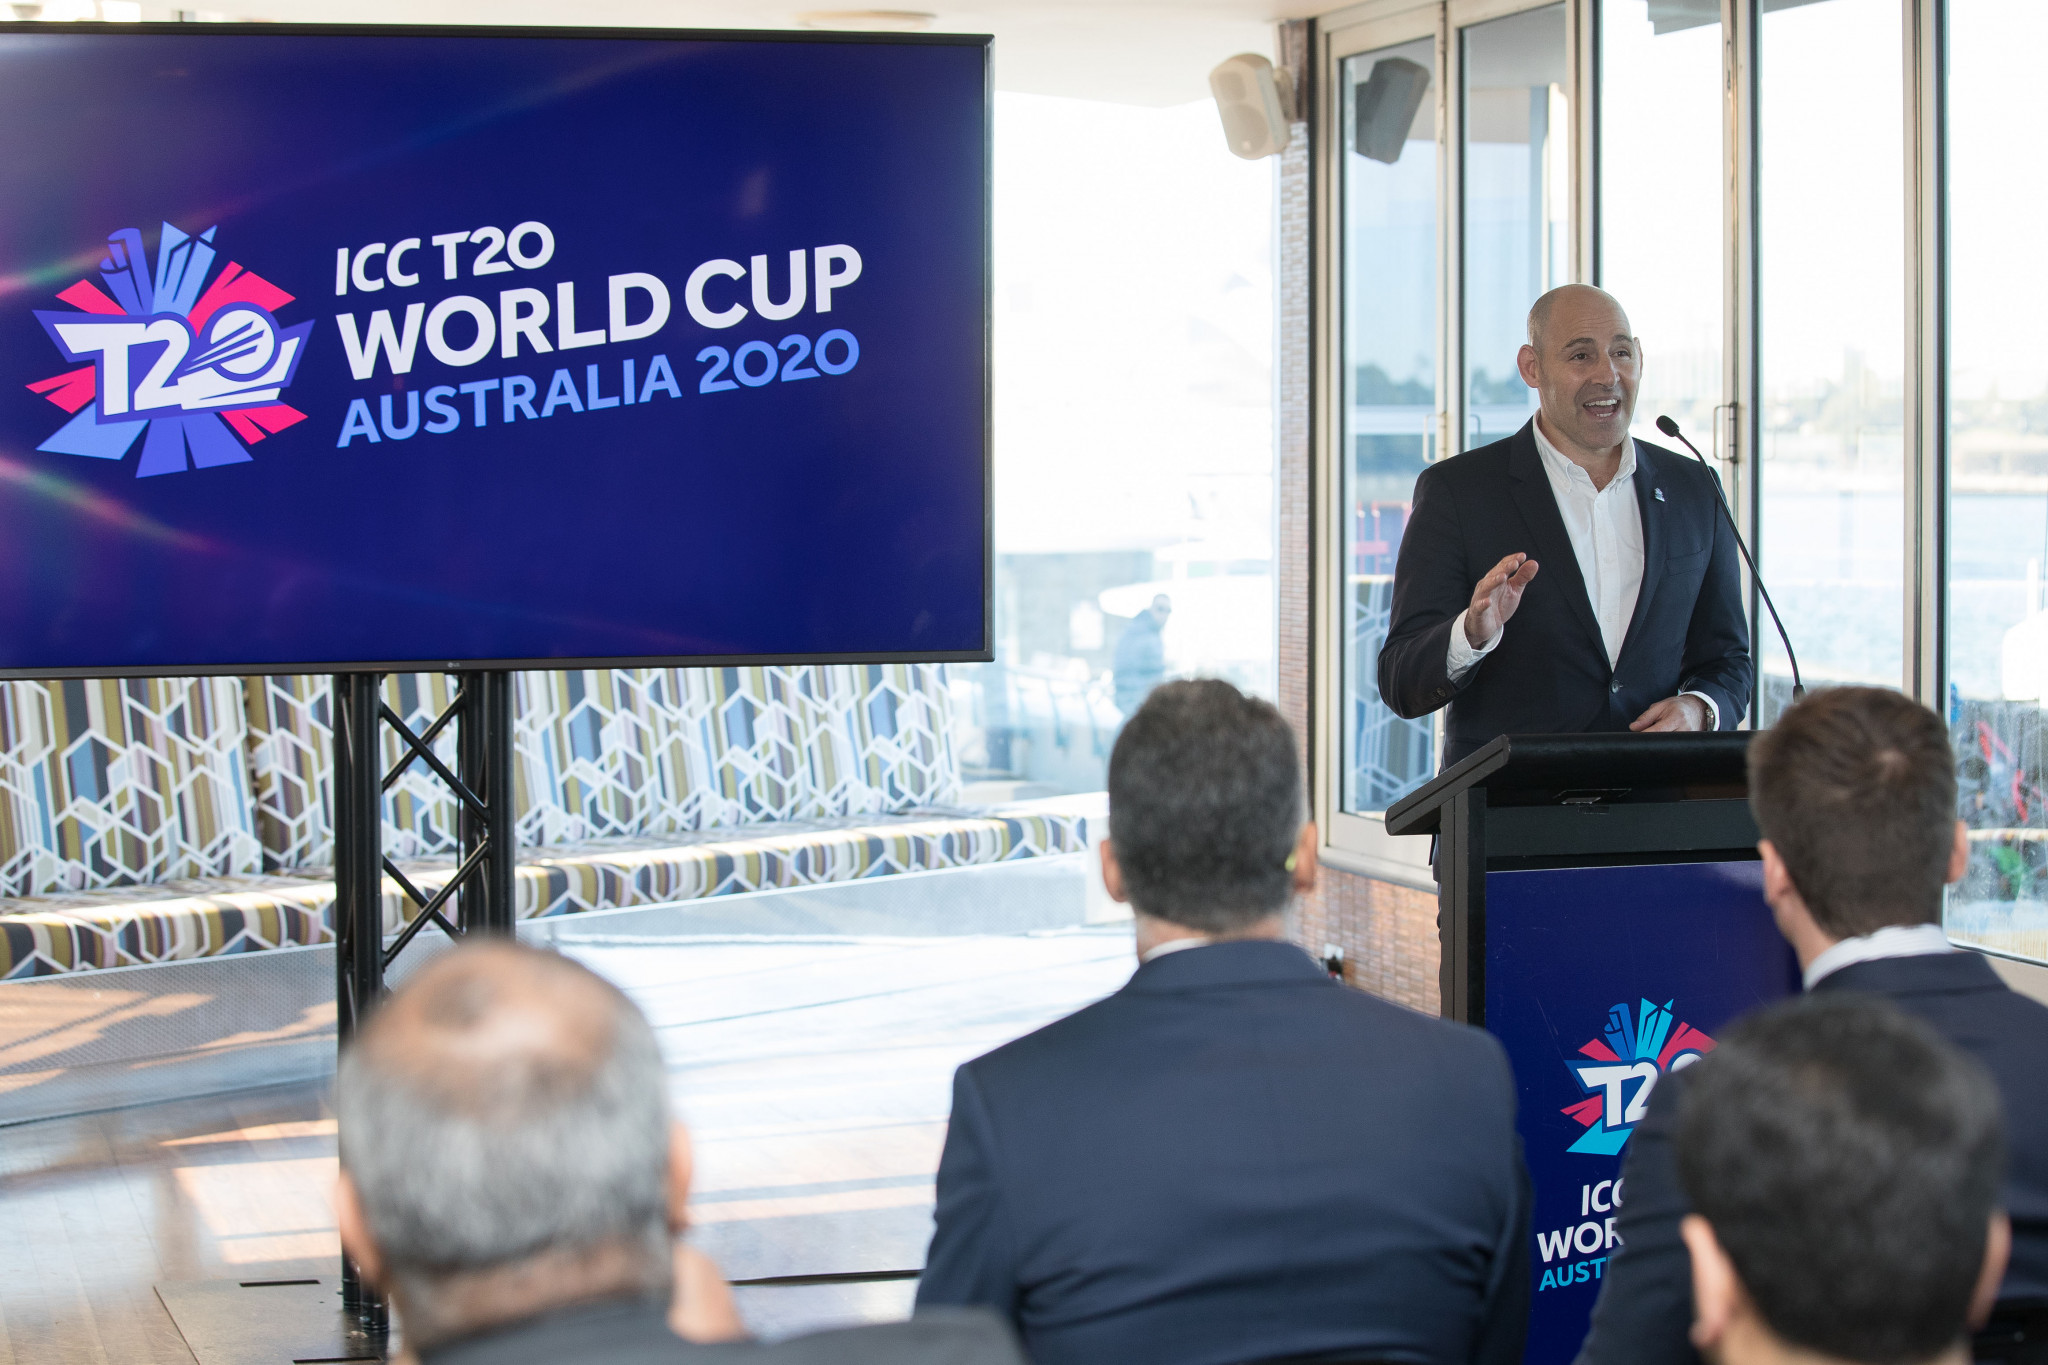 Techfront Australia to deliver sports tech at ICC T20 World Cup